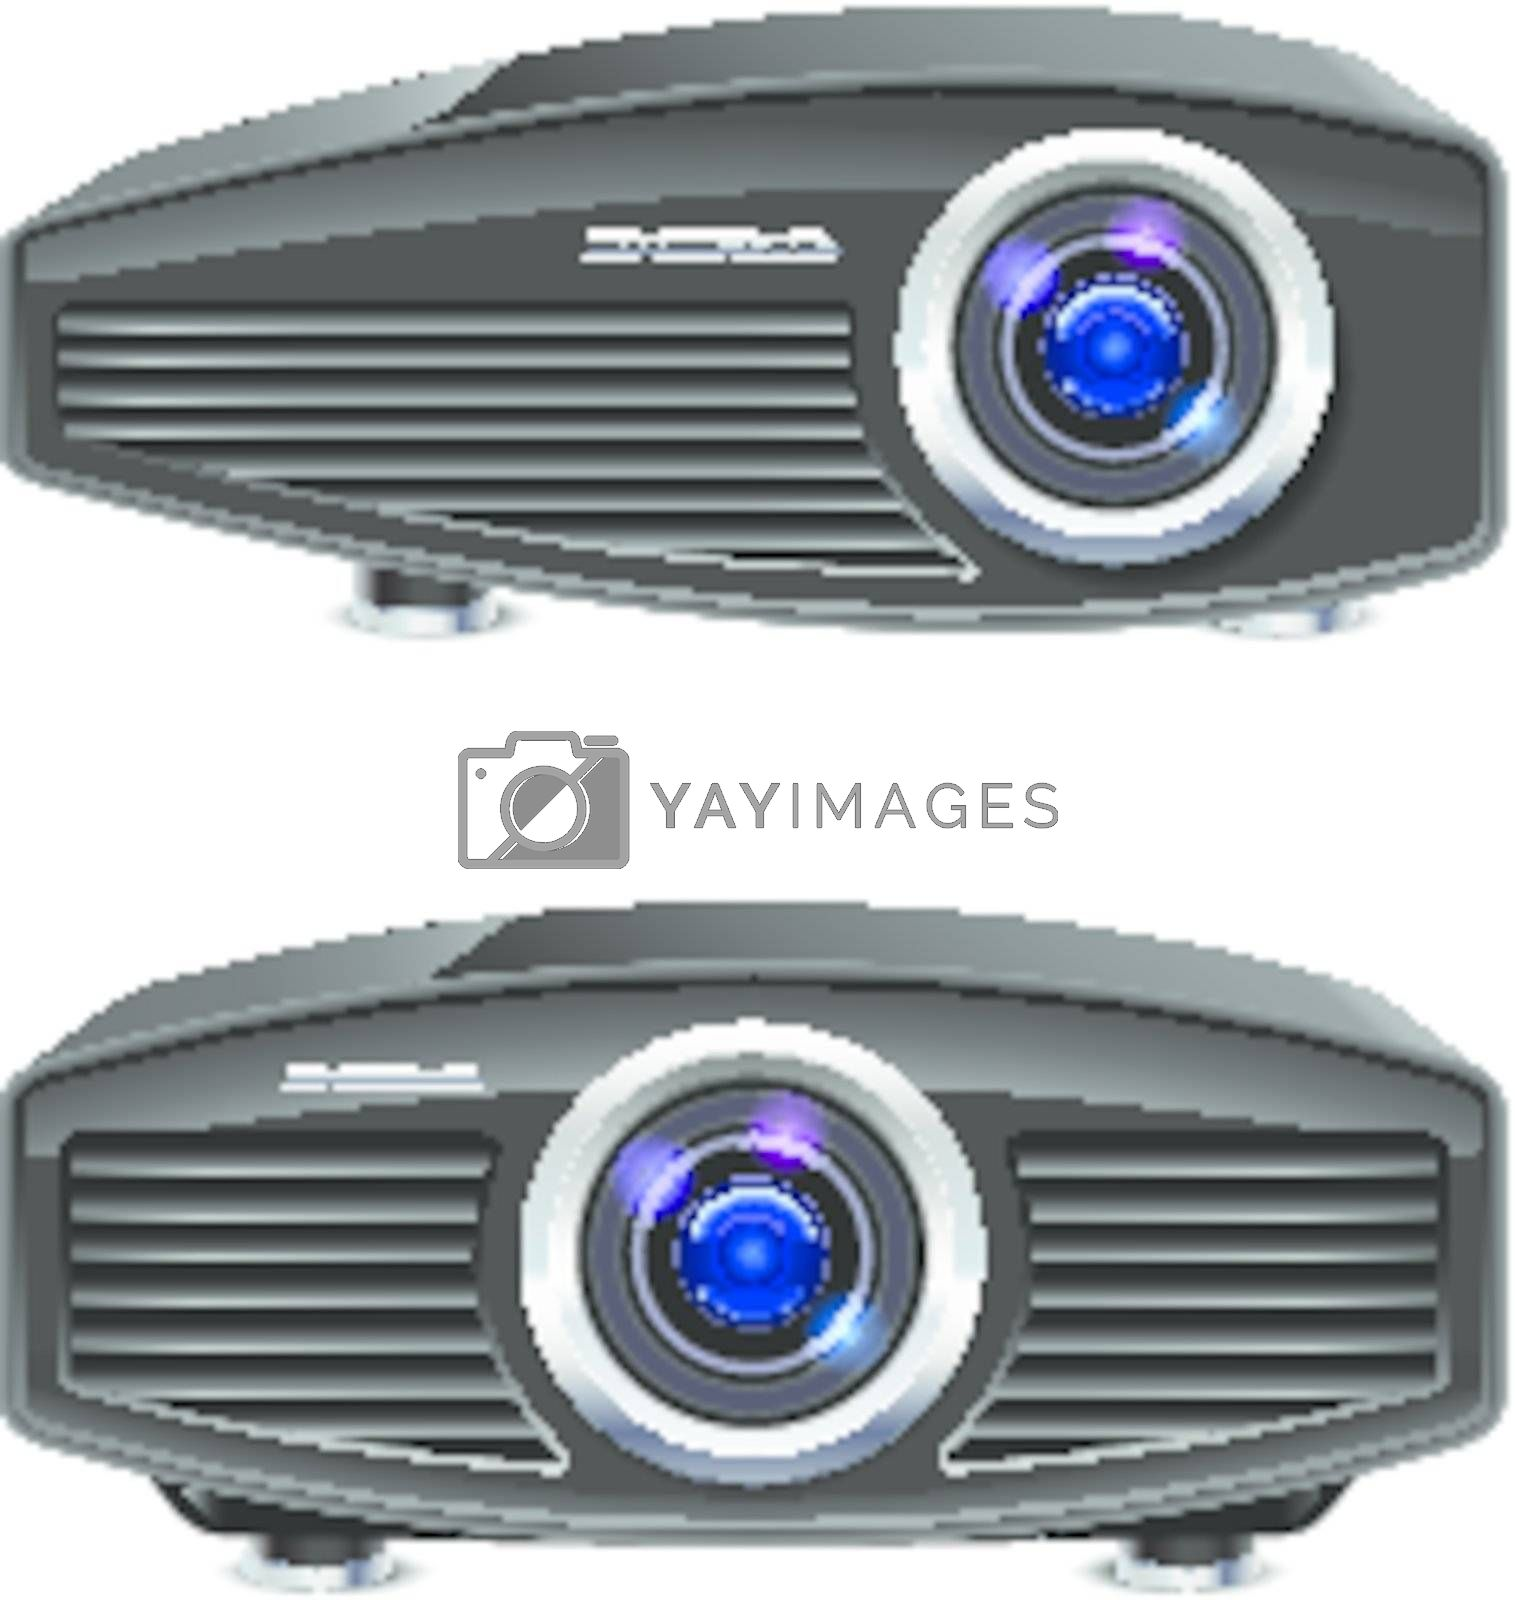 Realistic multimedia projector. Illustration on white background for design